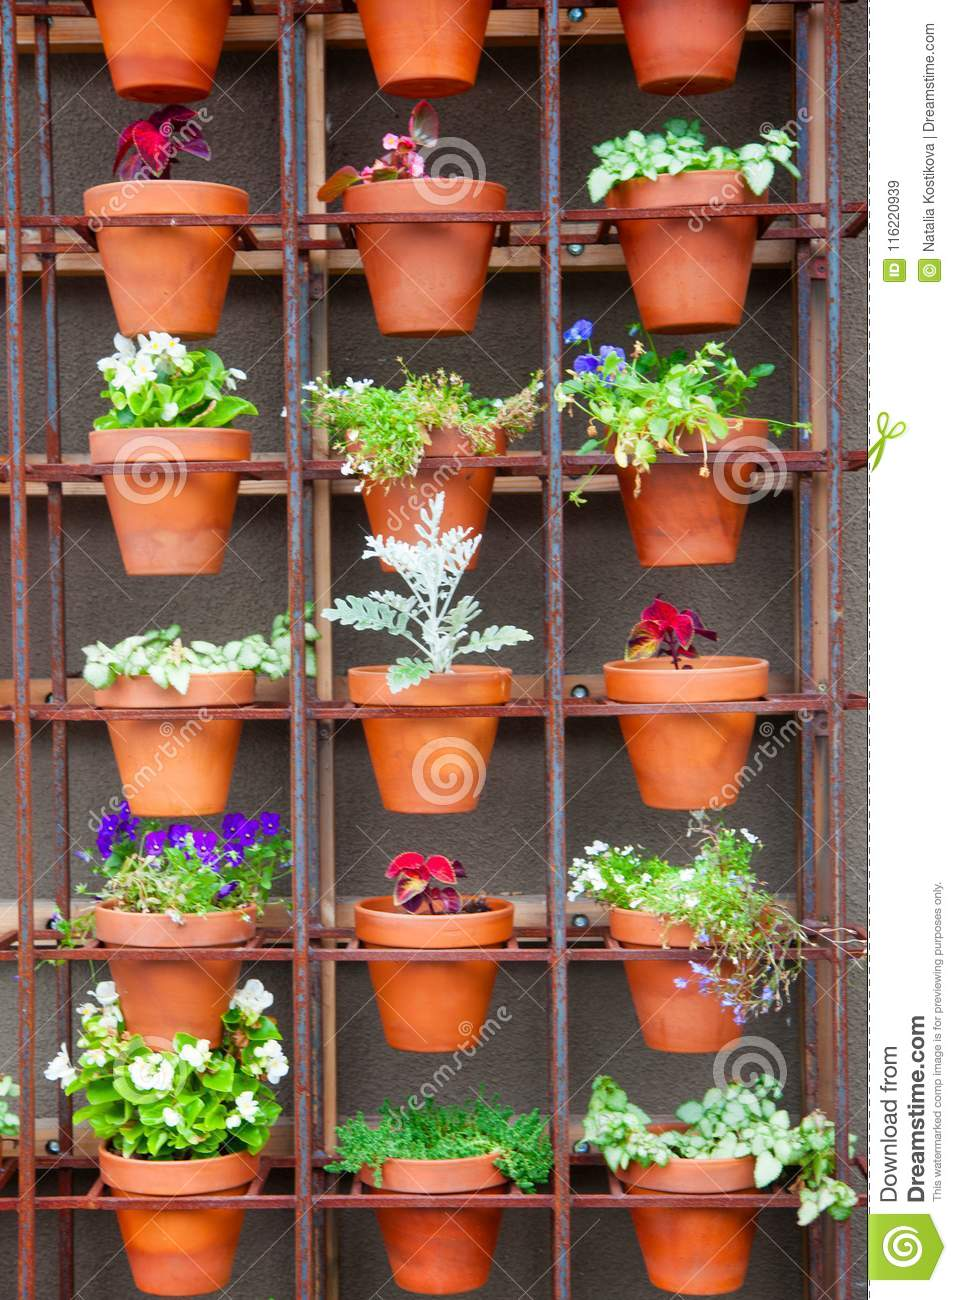 Dreamstime.com & Many Clay Flower Pots With Indoor Plants. Stock Image ...